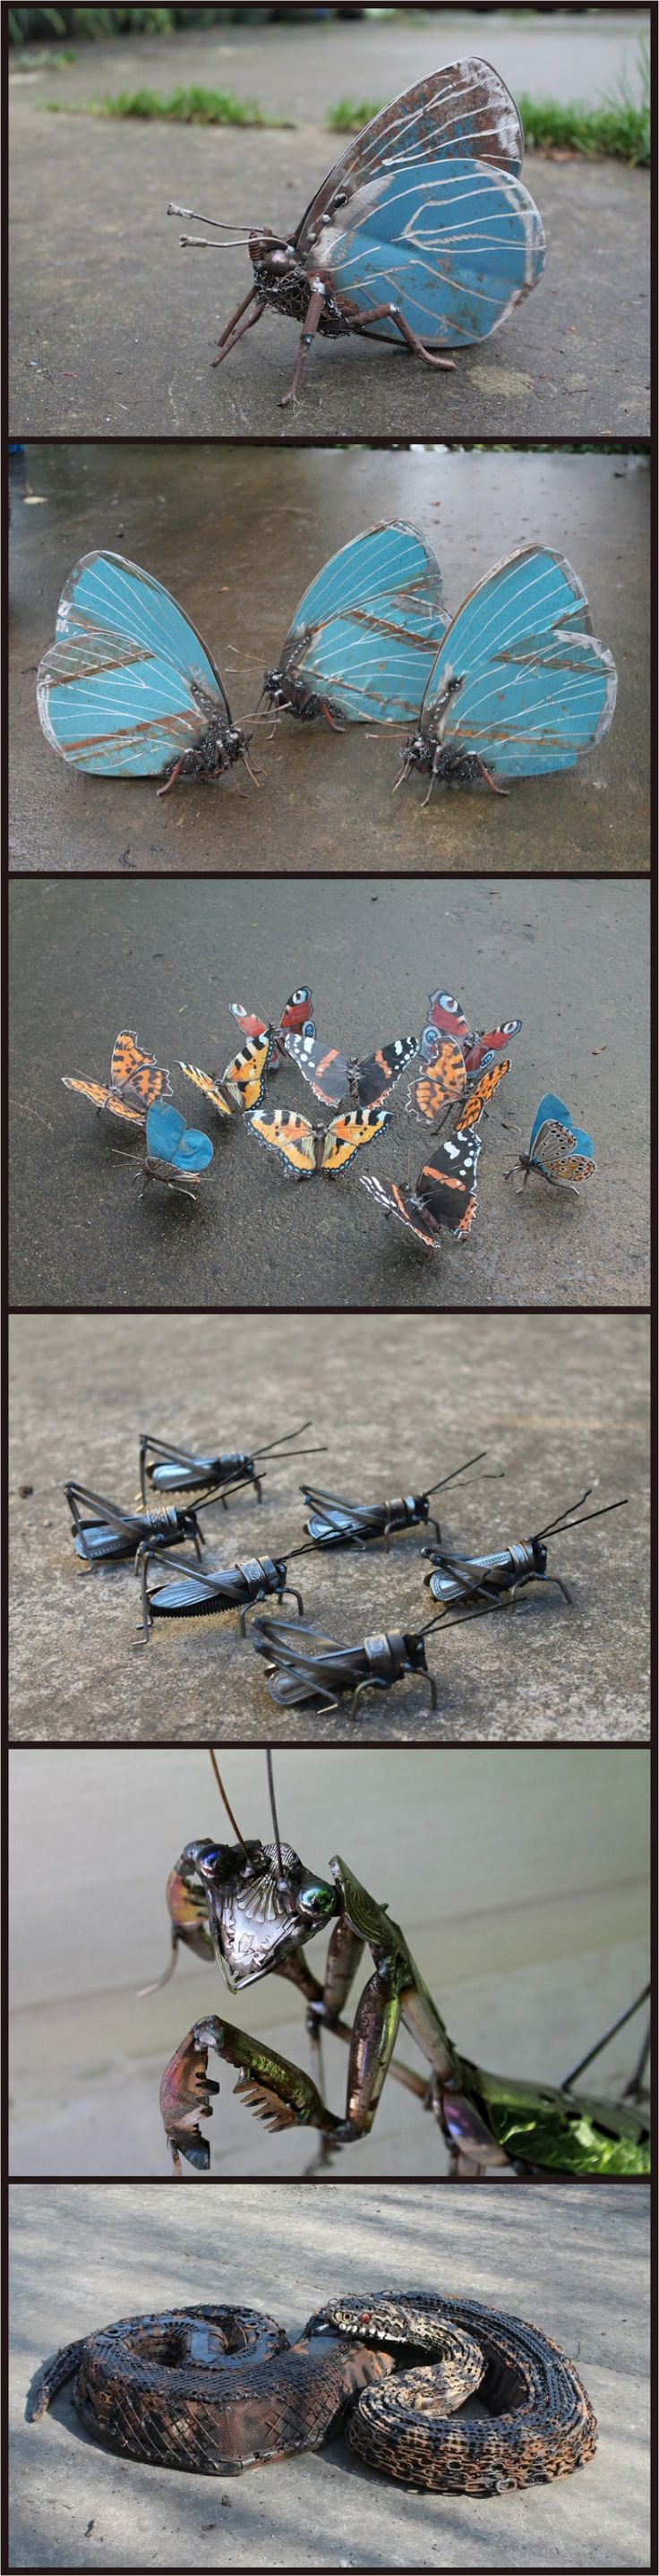 Best Sculpture And Other D Art Images On Pinterest Animal - Artist transforms scrap metal into amazing animal sculptures